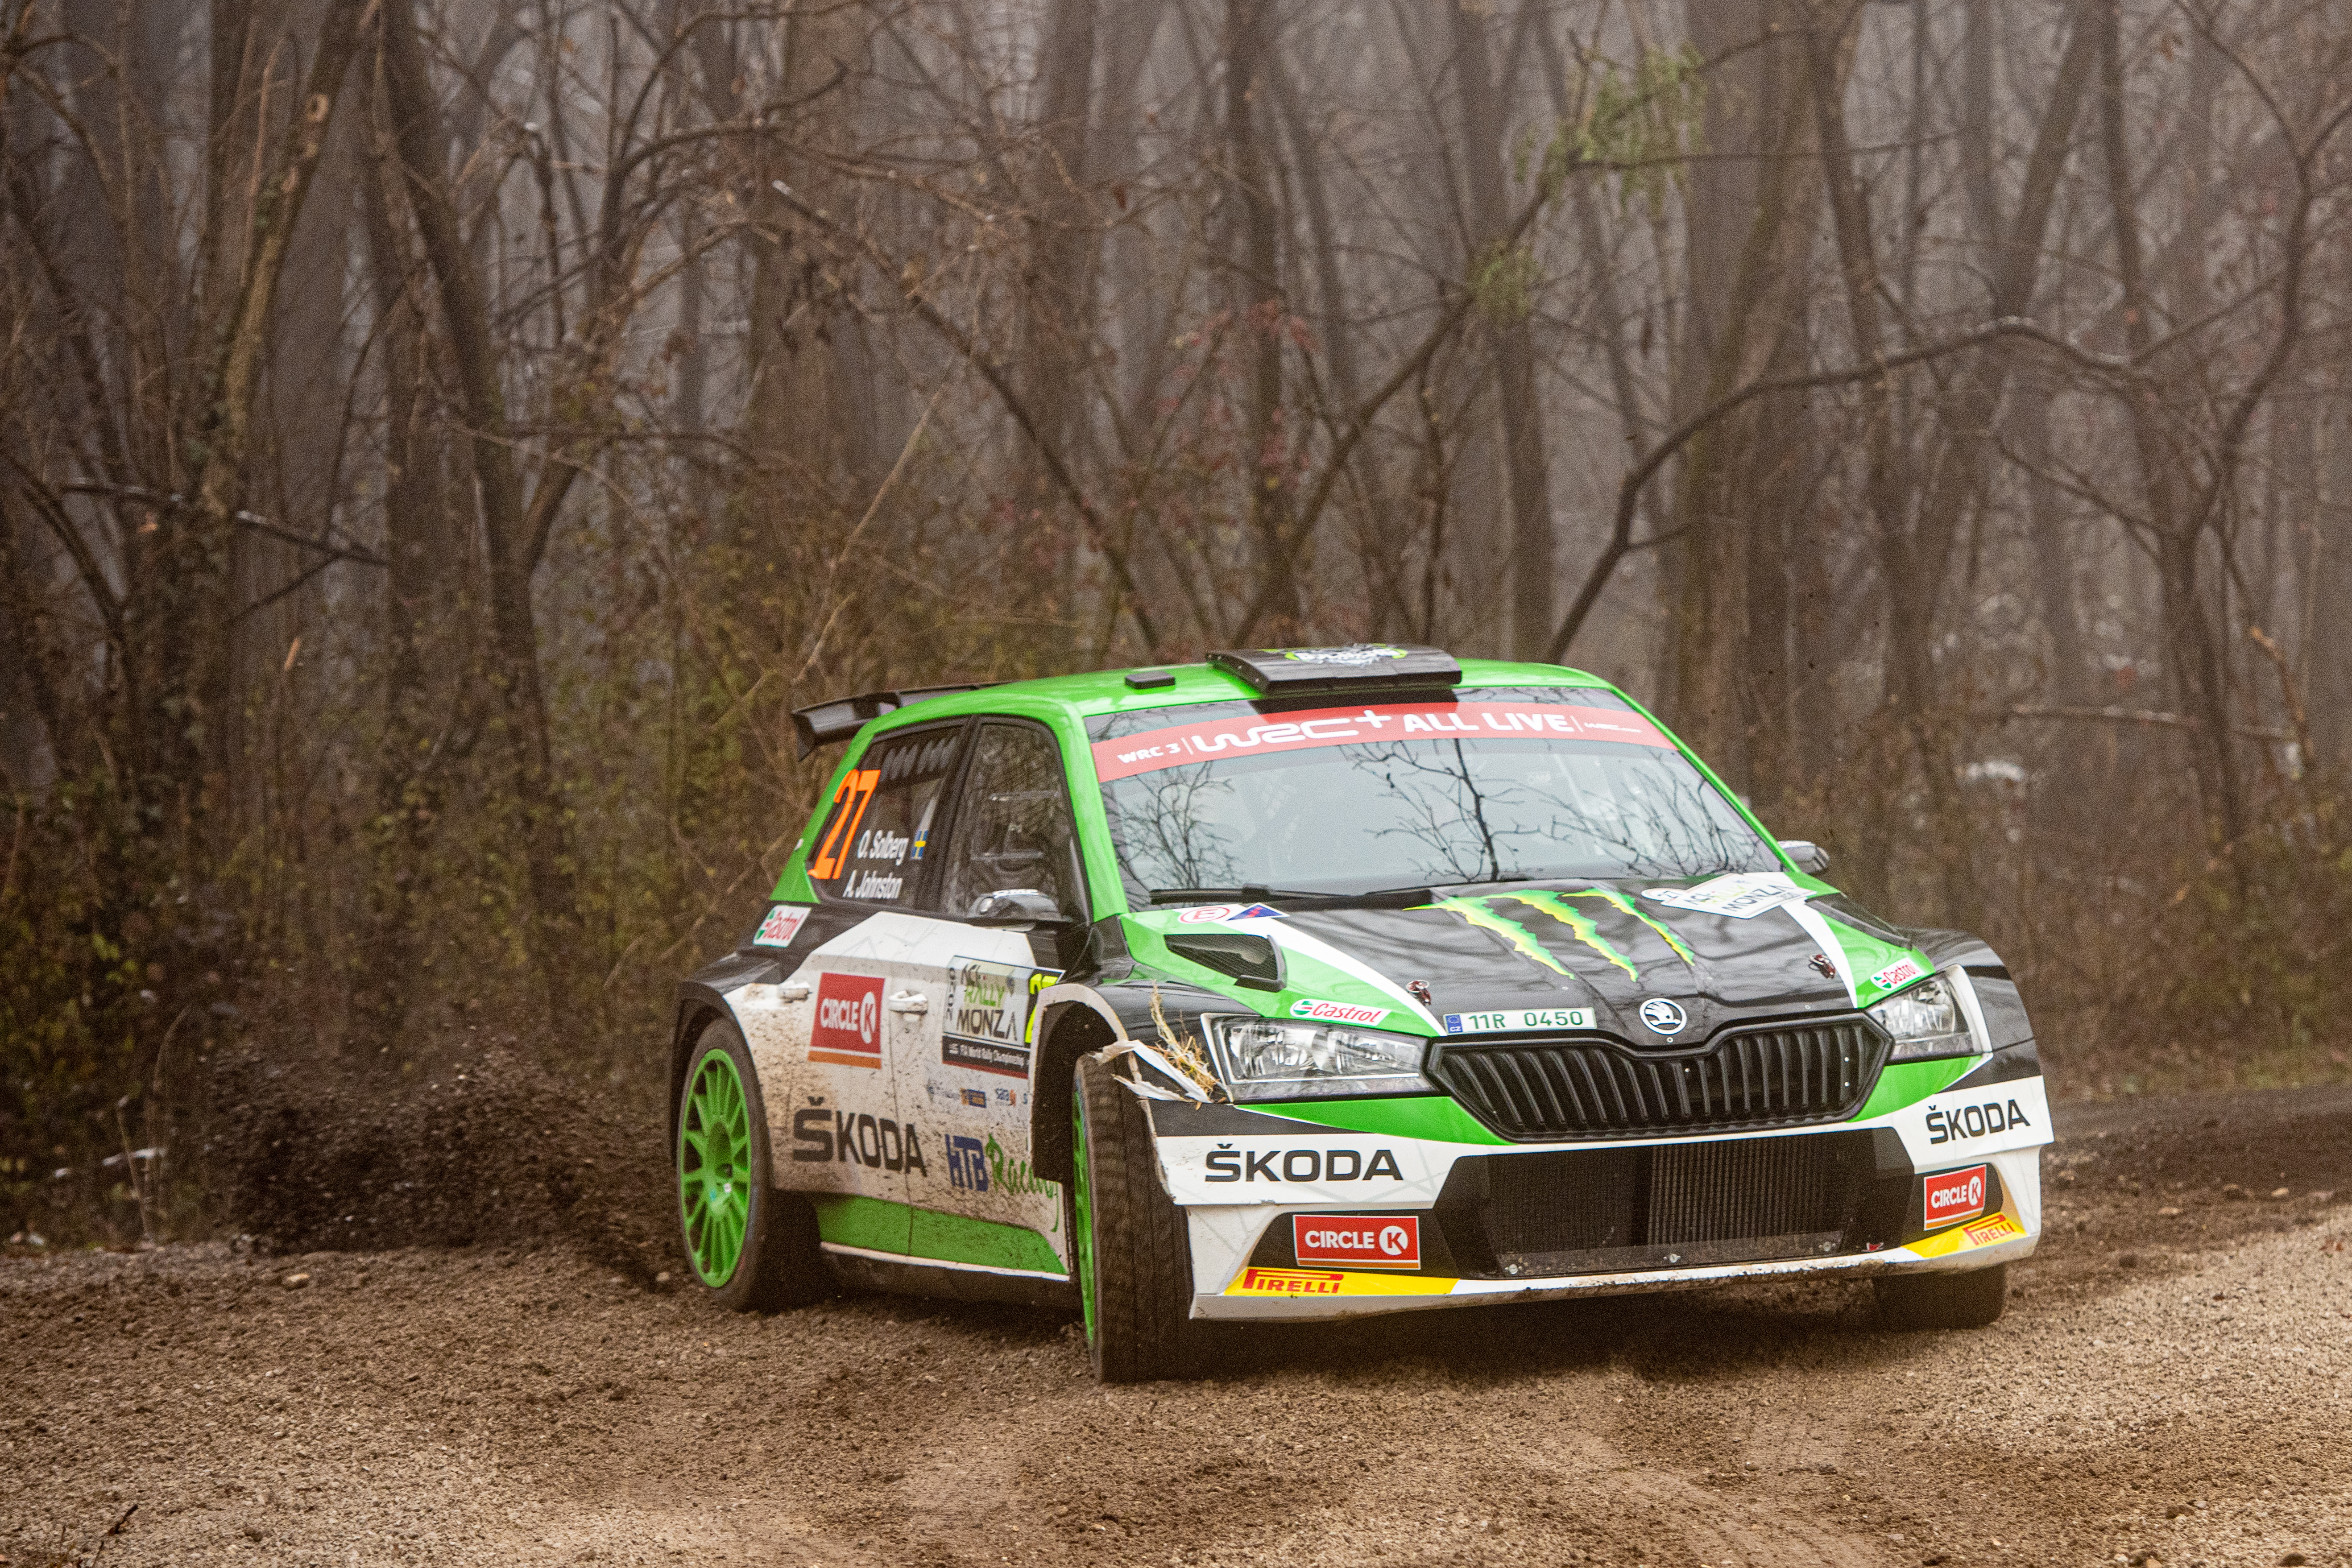 SKODA customers again successful around the world in a challenging rally season 2020 - Image 2